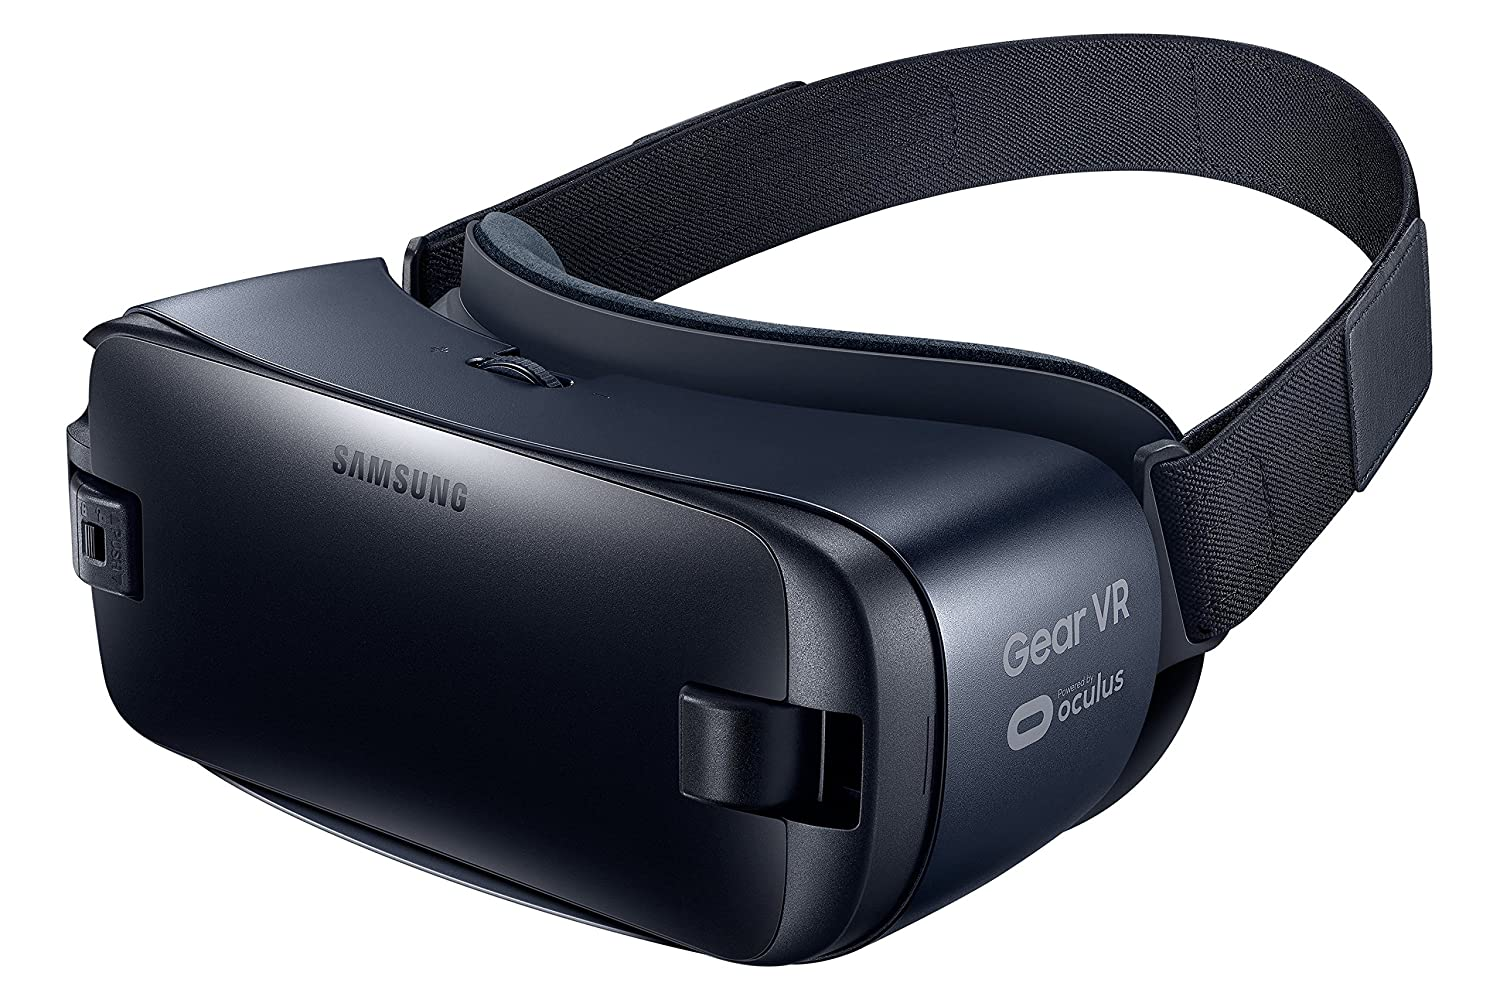 565b3956b7ba Amazon.com  Samsung Gear VR (2016) - GS7s